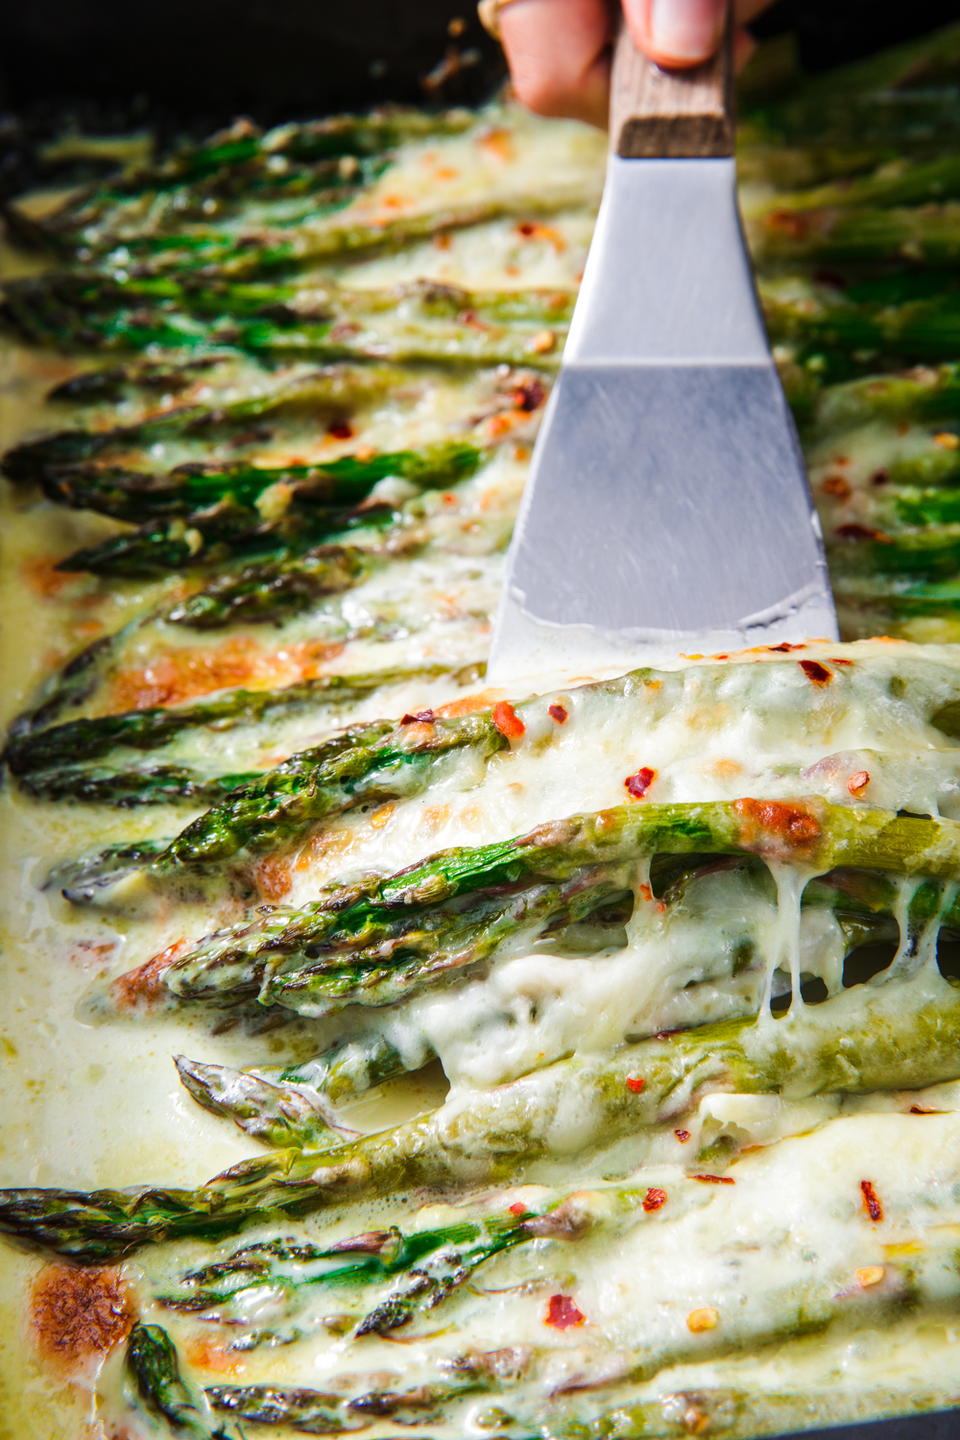 "<p>This side dish will be gone in minutes.</p><p>Get the recipe form <a href=""https://www.delish.com/cooking/recipe-ideas/recipes/a52405/cheesy-baked-asparagus-recipe/"" rel=""nofollow noopener"" target=""_blank"" data-ylk=""slk:Delish"" class=""link rapid-noclick-resp"">Delish</a>.</p>"